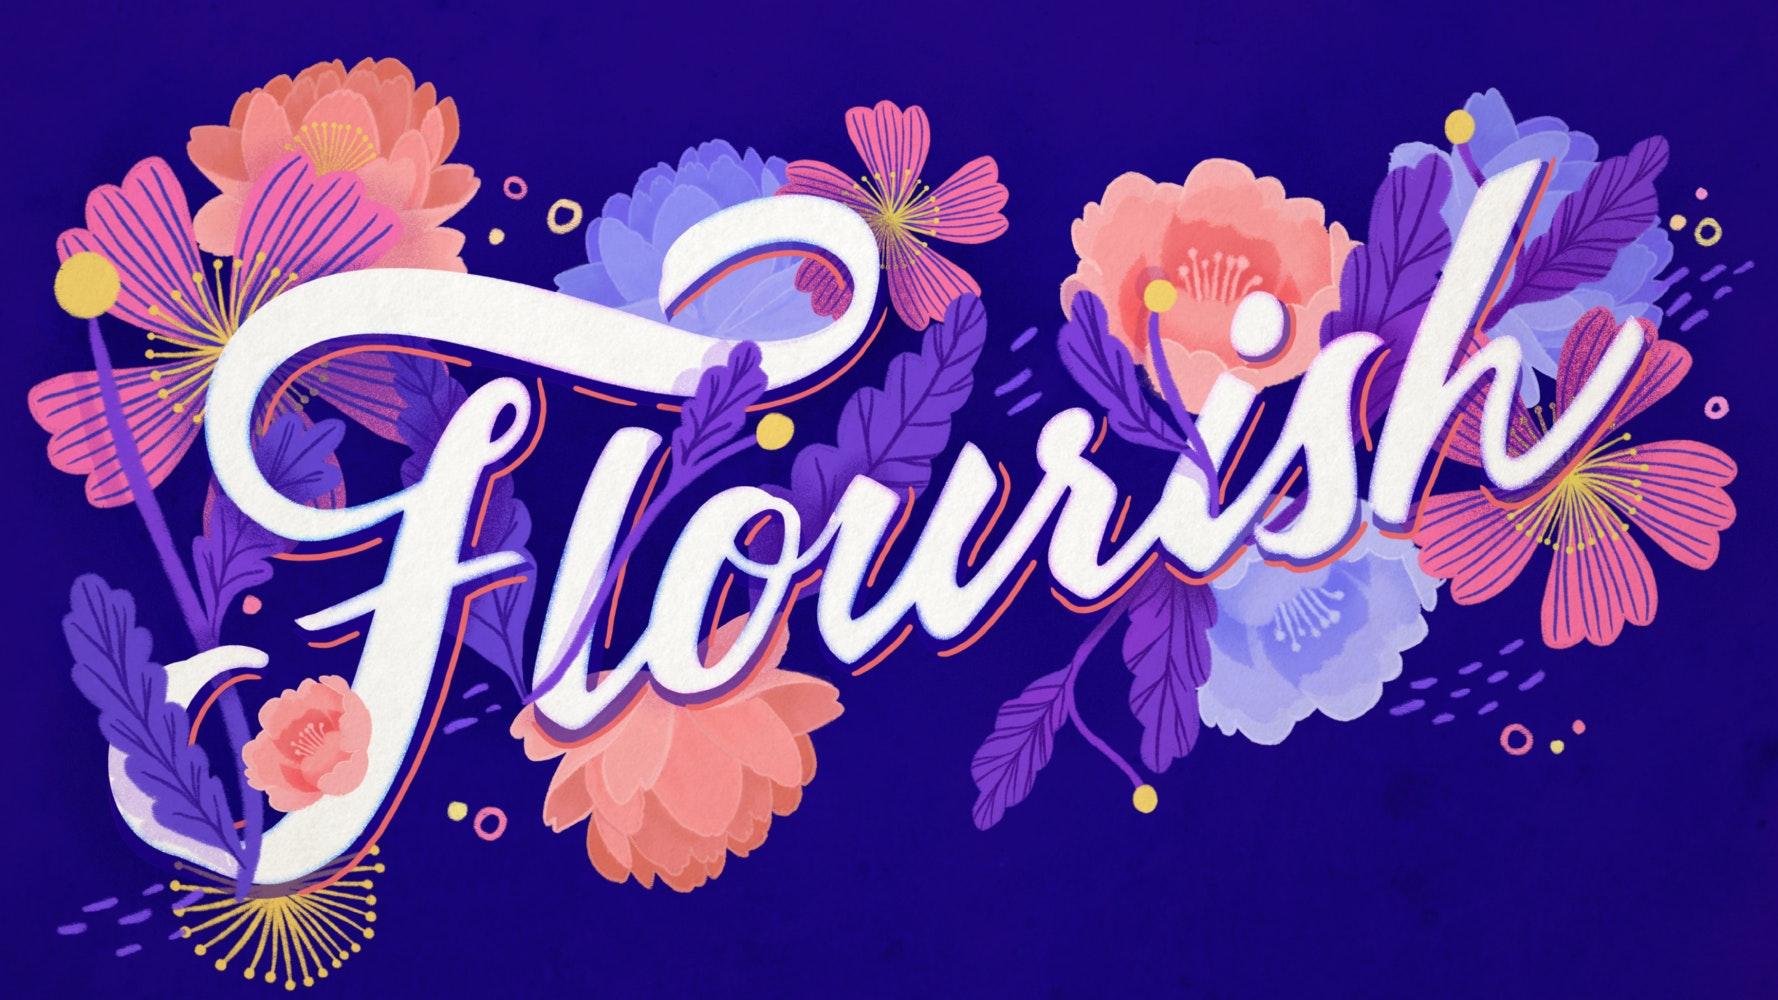 The word Flourish with blooming, beautiful flowers.